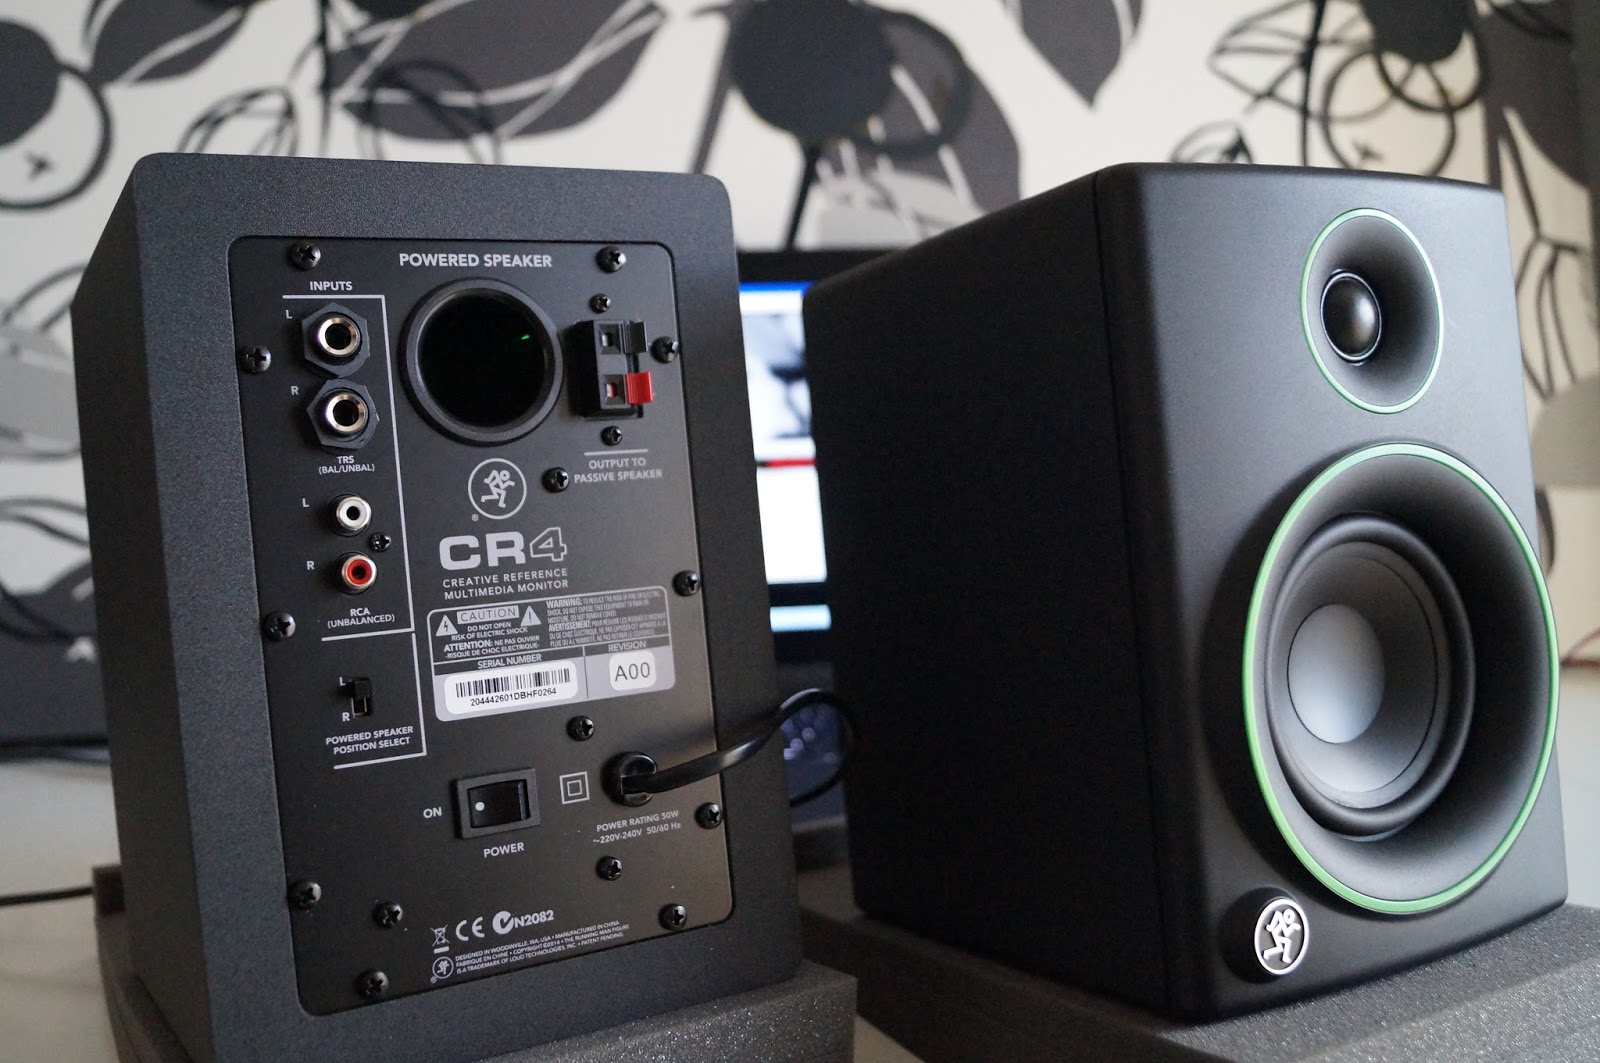 Mackie Cr4 Or Edifier R1700bt Budget Speakers Comparison